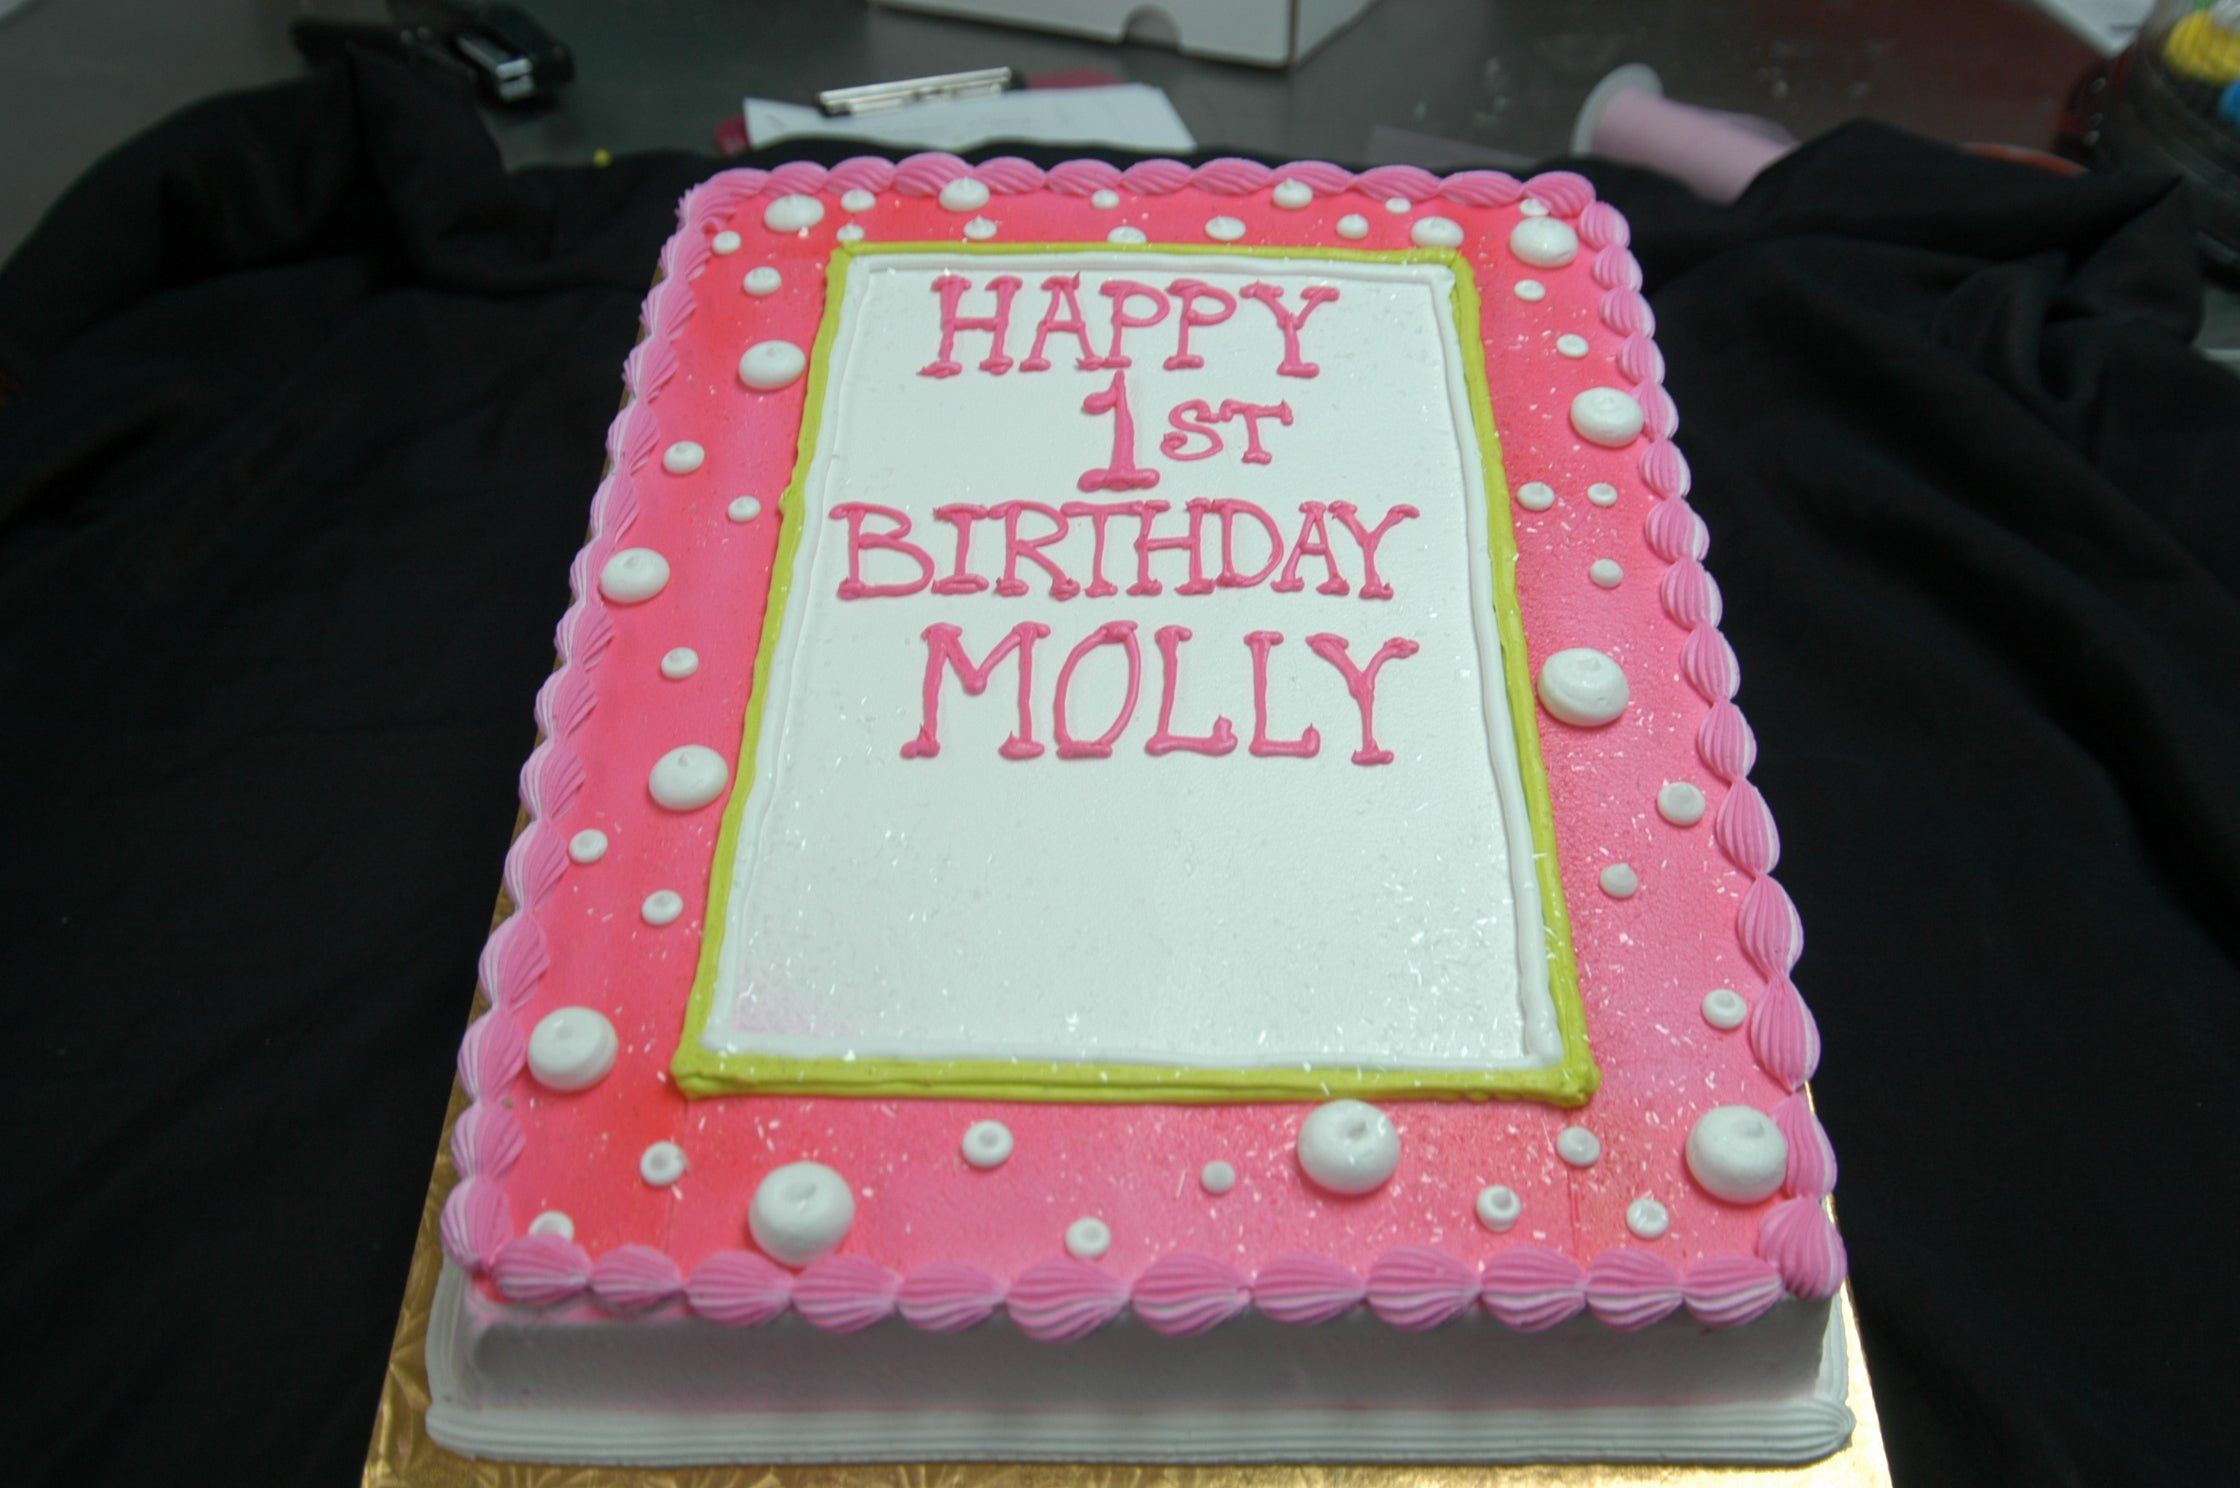 McArthur's Bakery Custom Cake with Pink Cake with White Polka Dots